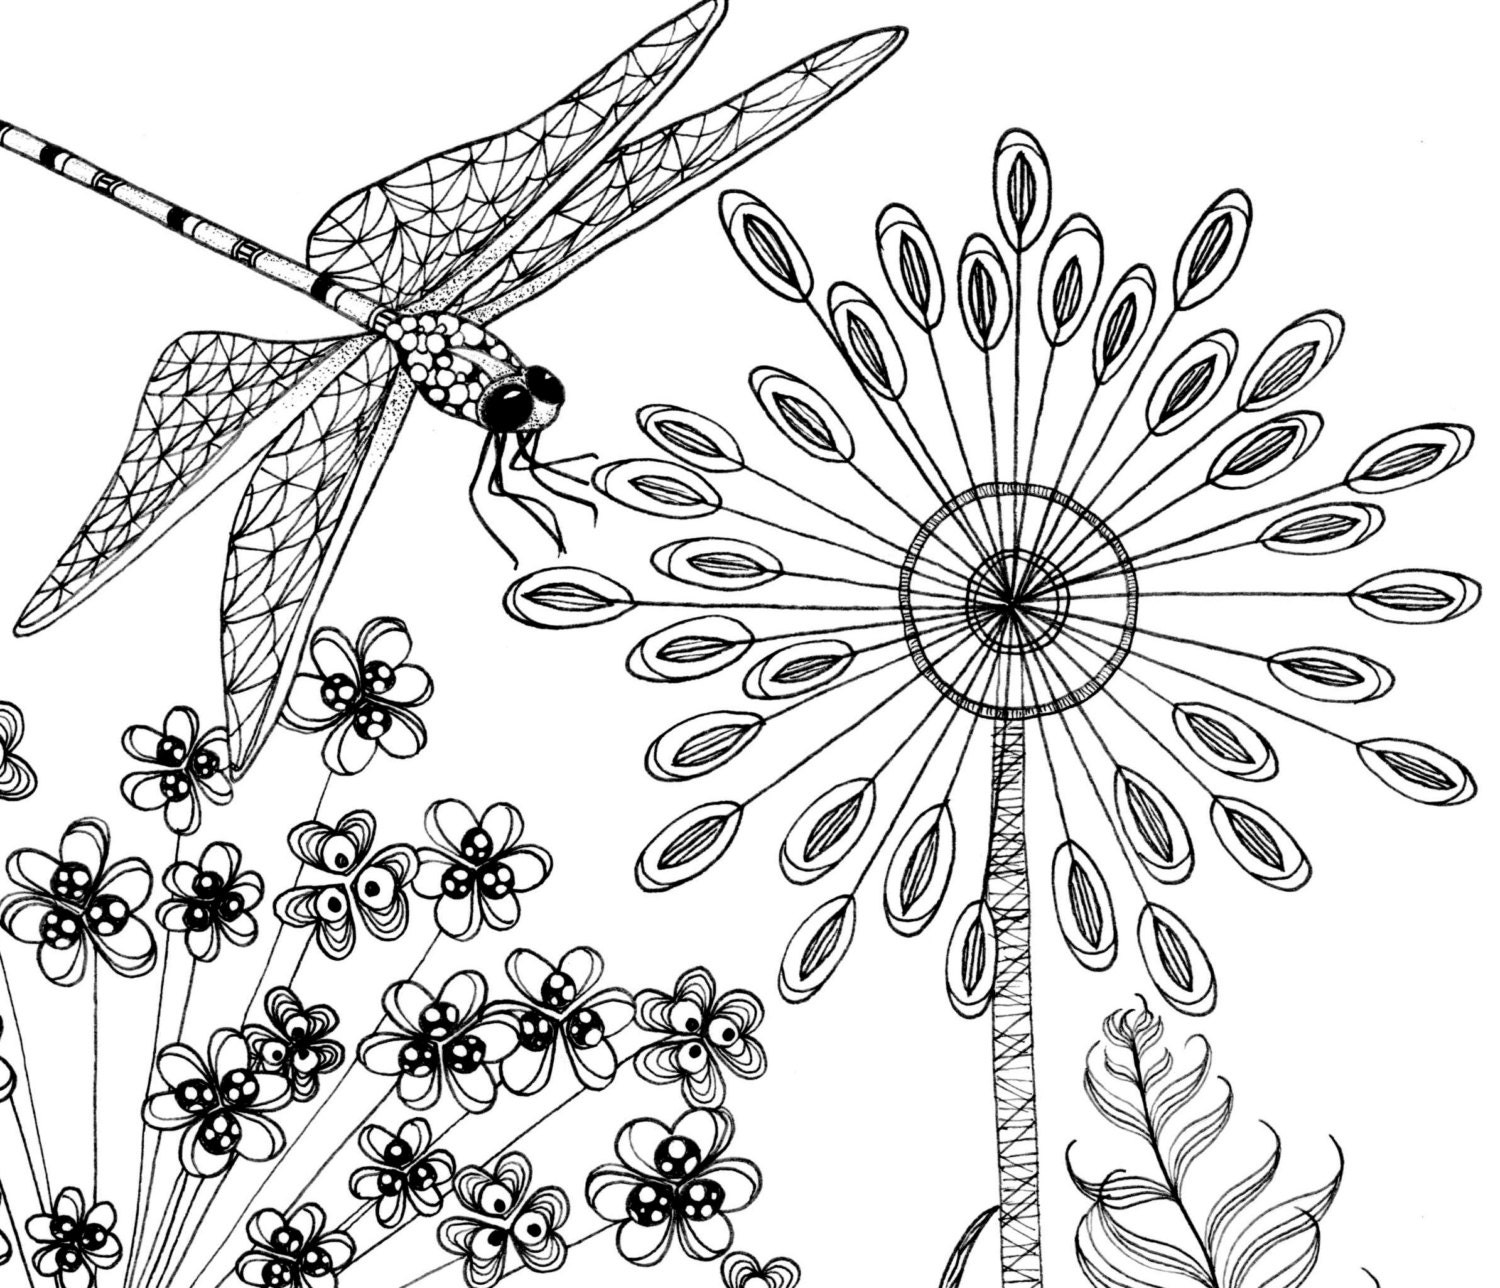 Printable coloring pages of a flower illustration & dragonfly